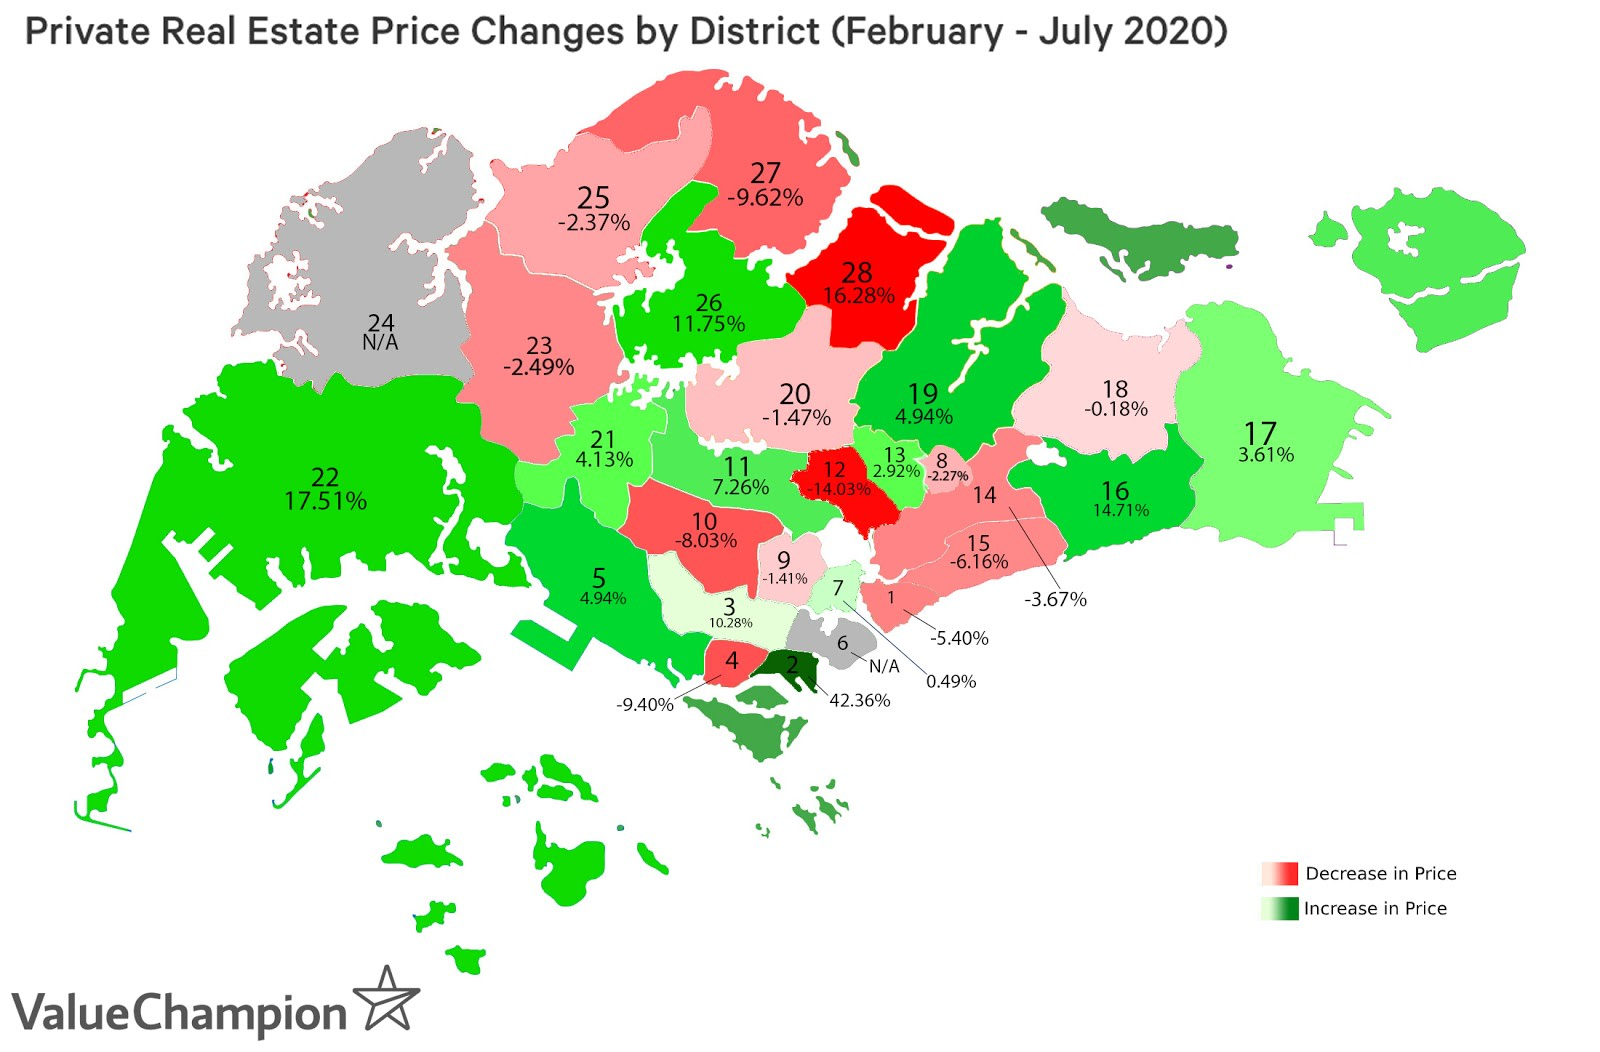 This map shows a change in PSF of private properties in Singapore by district between February and July